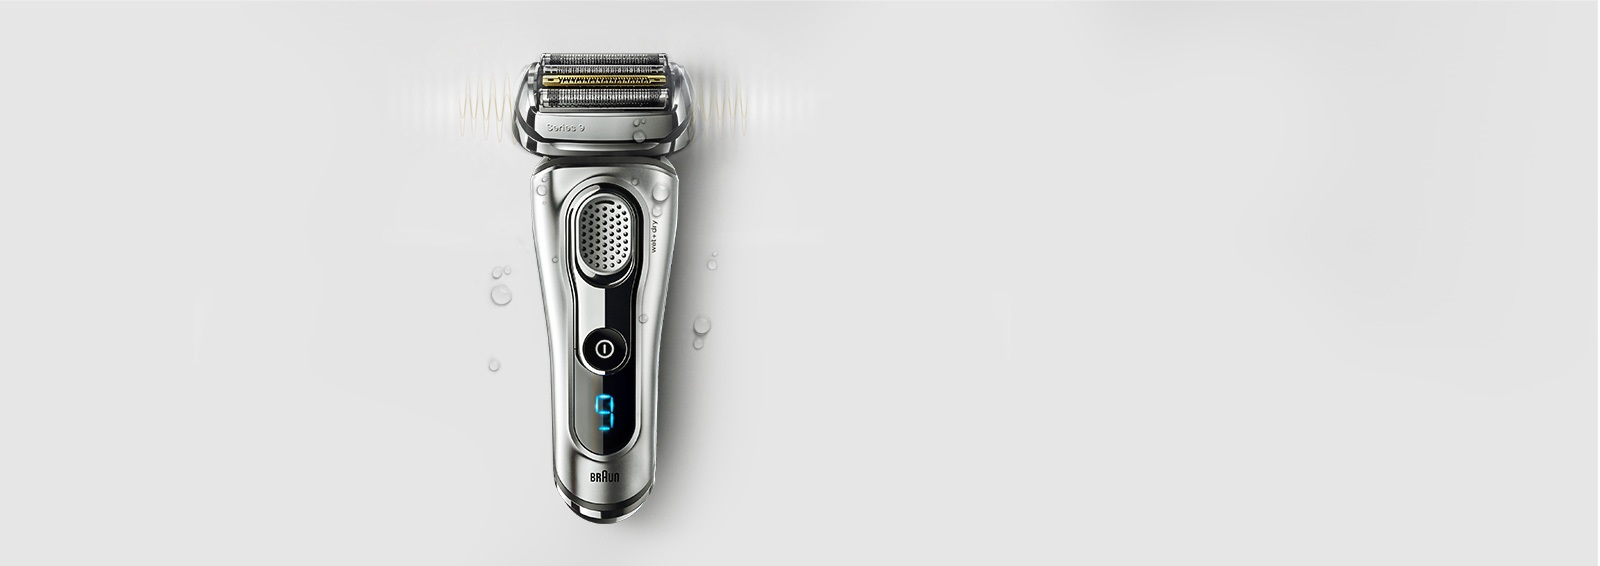 ps-stage-series-9-shaver